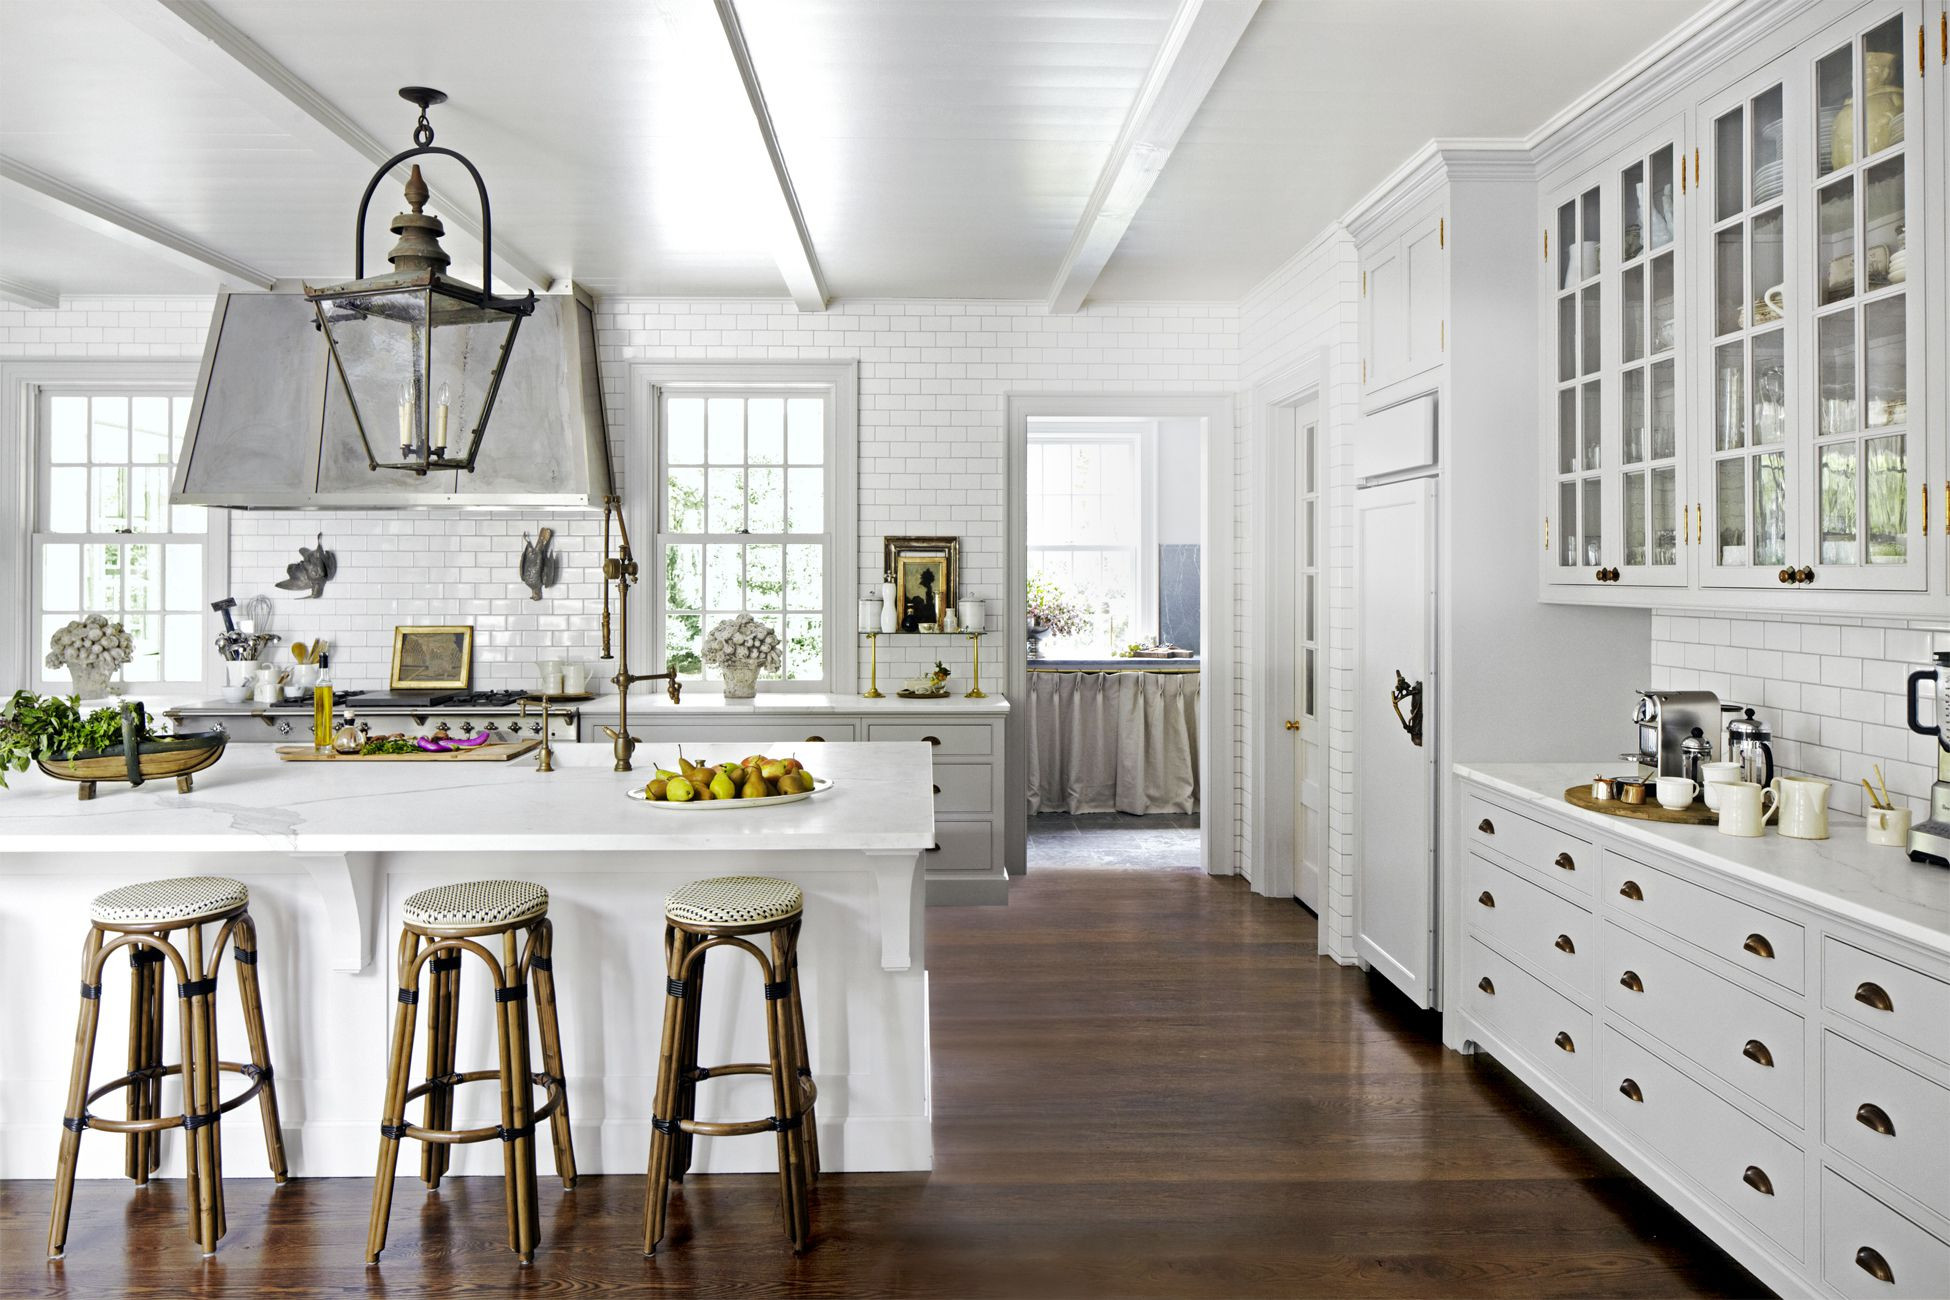 best hardwood floor color with white cabinets of 8 gorgeous kitchen trends that will be huge in 2018 in 1483474310 kitchen reinvention dark floors 0117